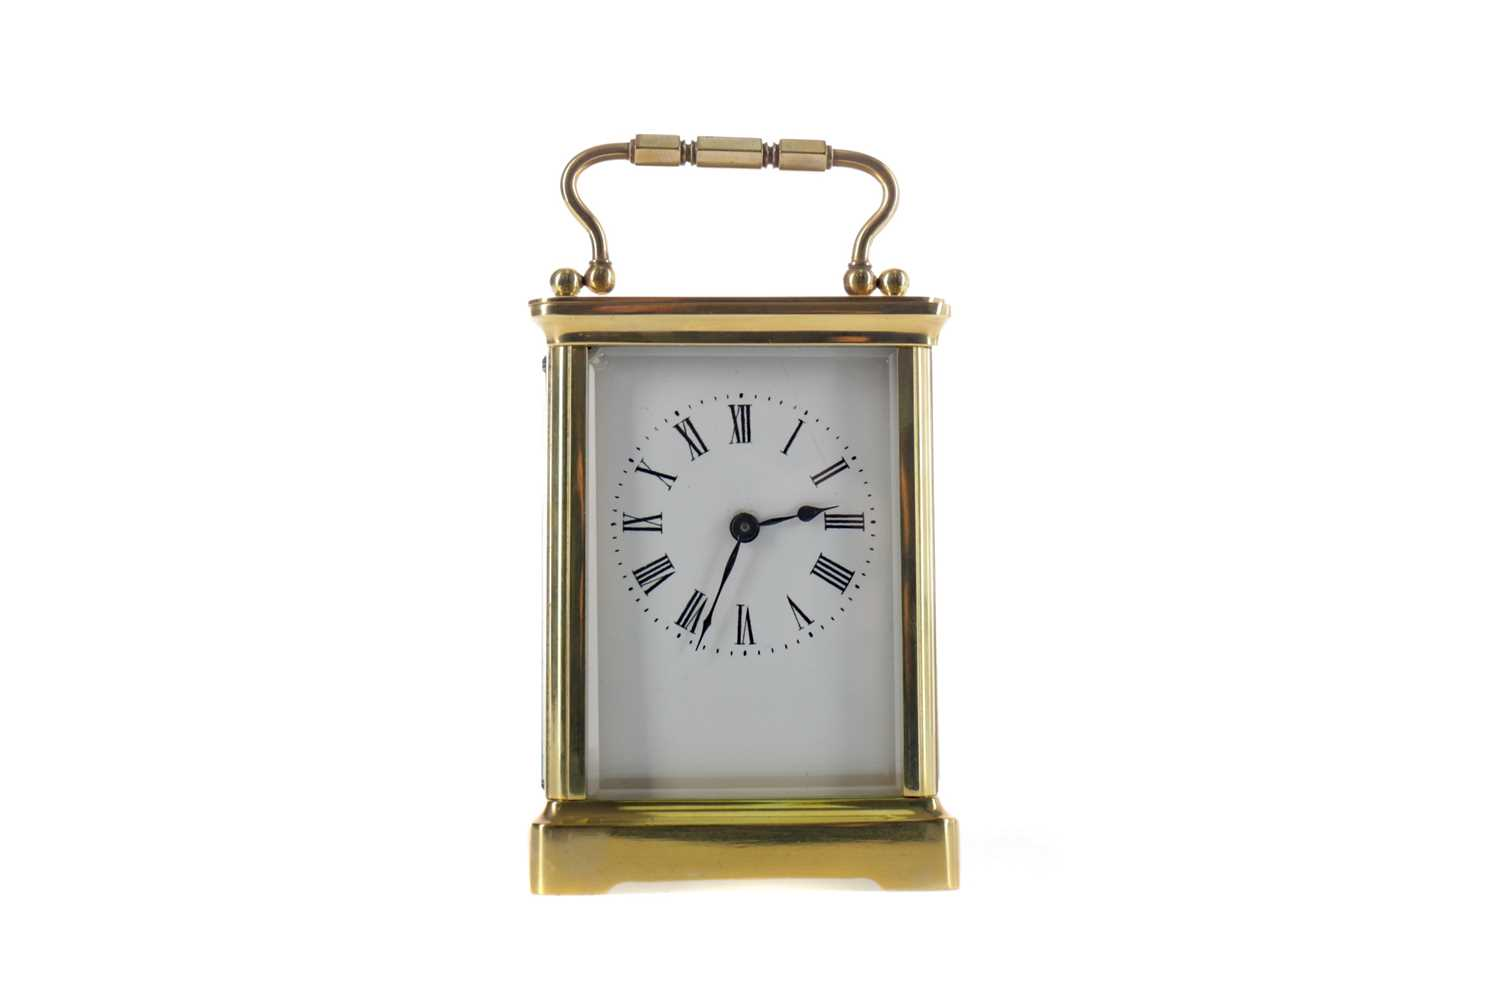 Lot 1743 - AN EARLY 20TH CENTURY CARRIAGE CLOCK